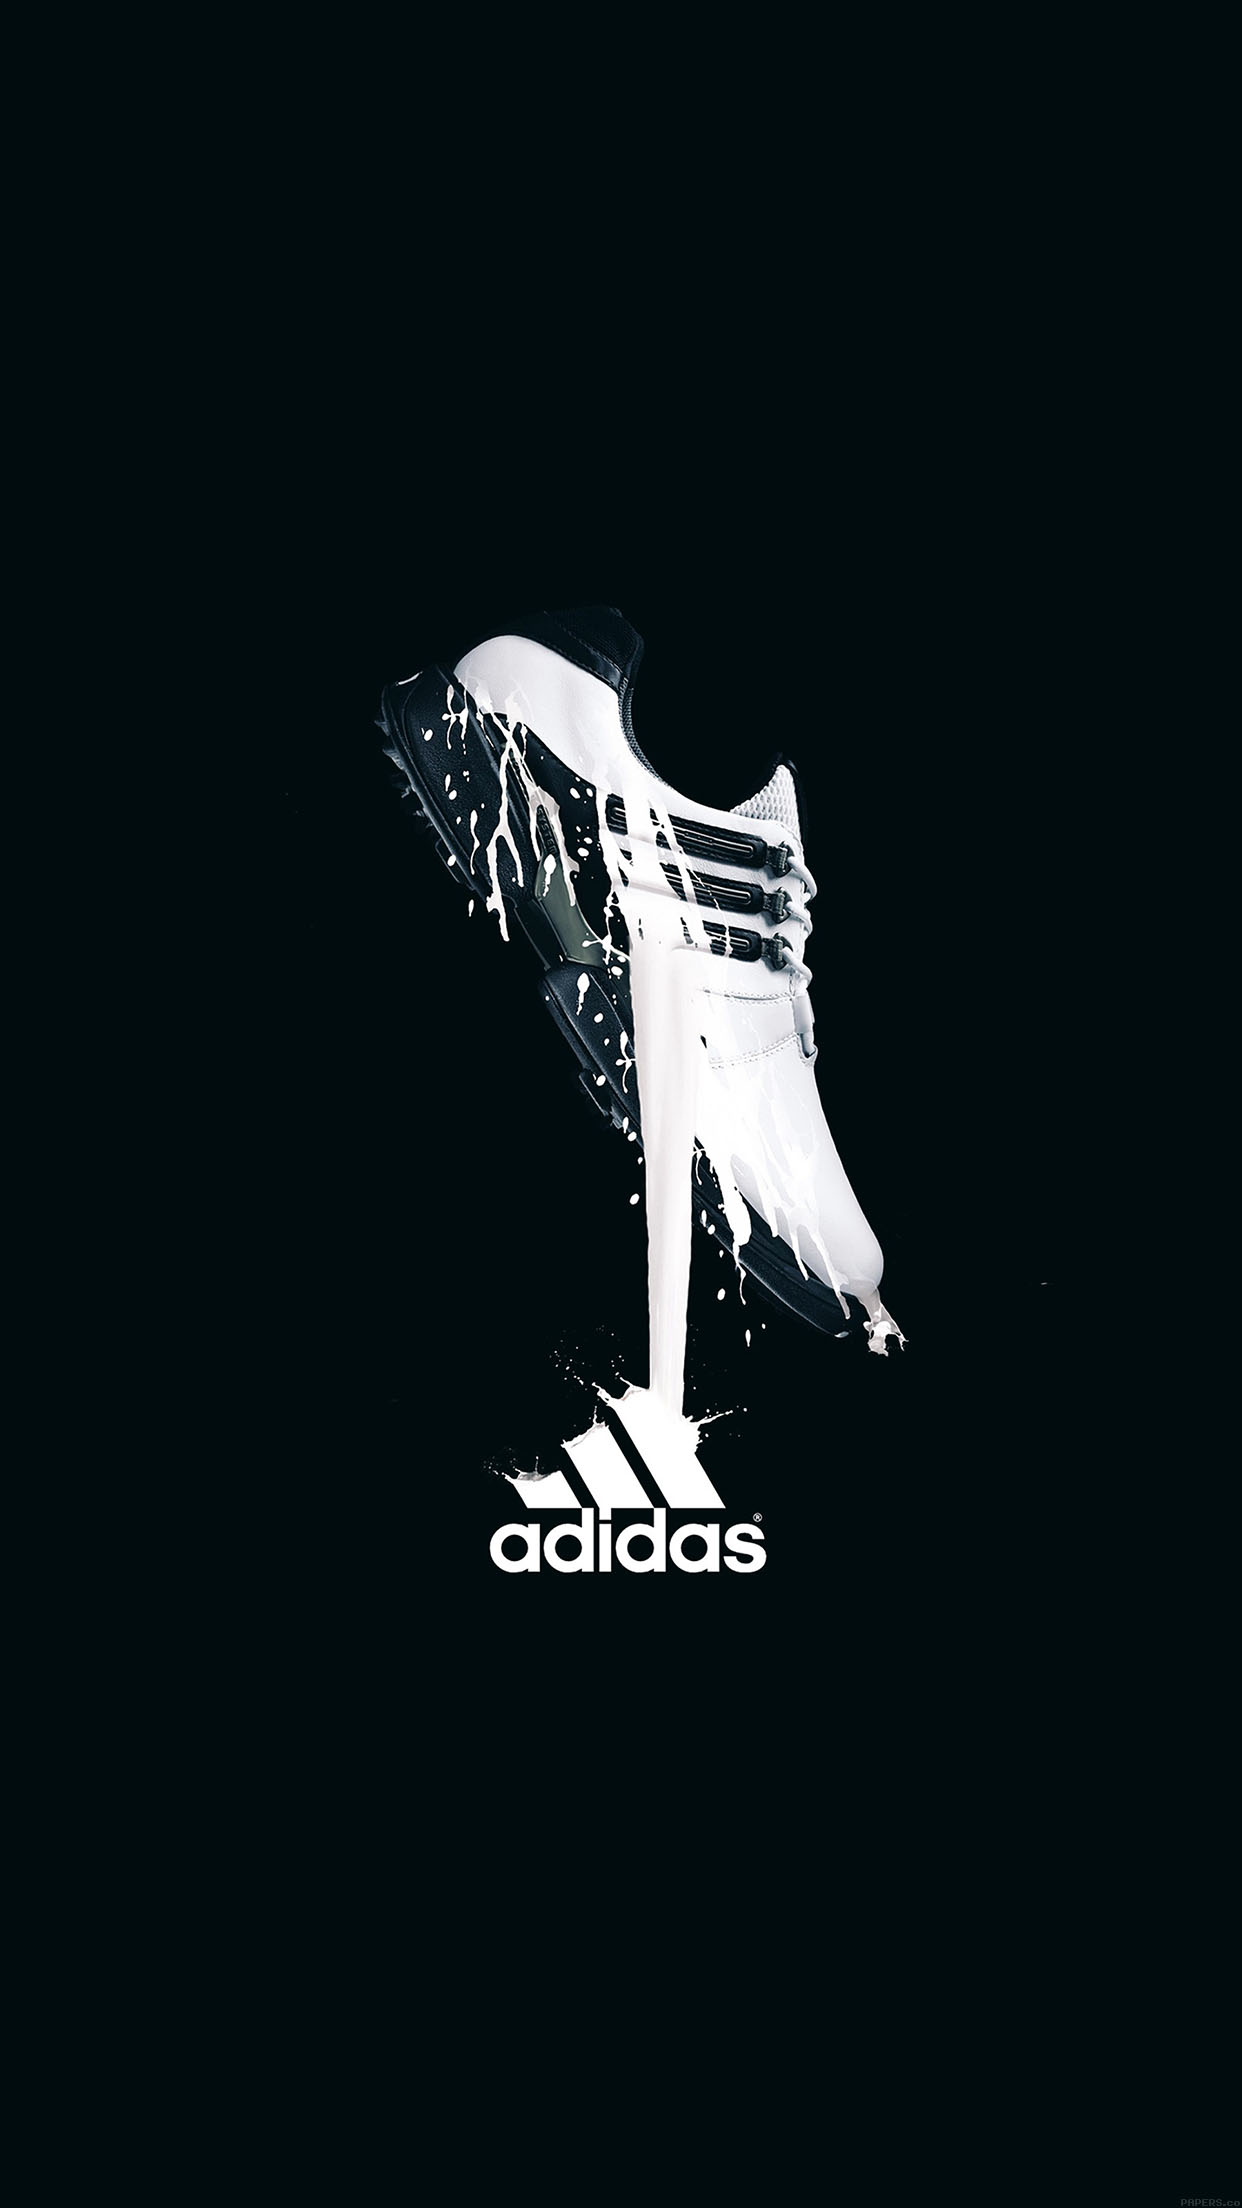 Real Madrid Iphone 4 Wallpaper Ab48 Wallpaper Adidas Black Logo Sports Papers Co